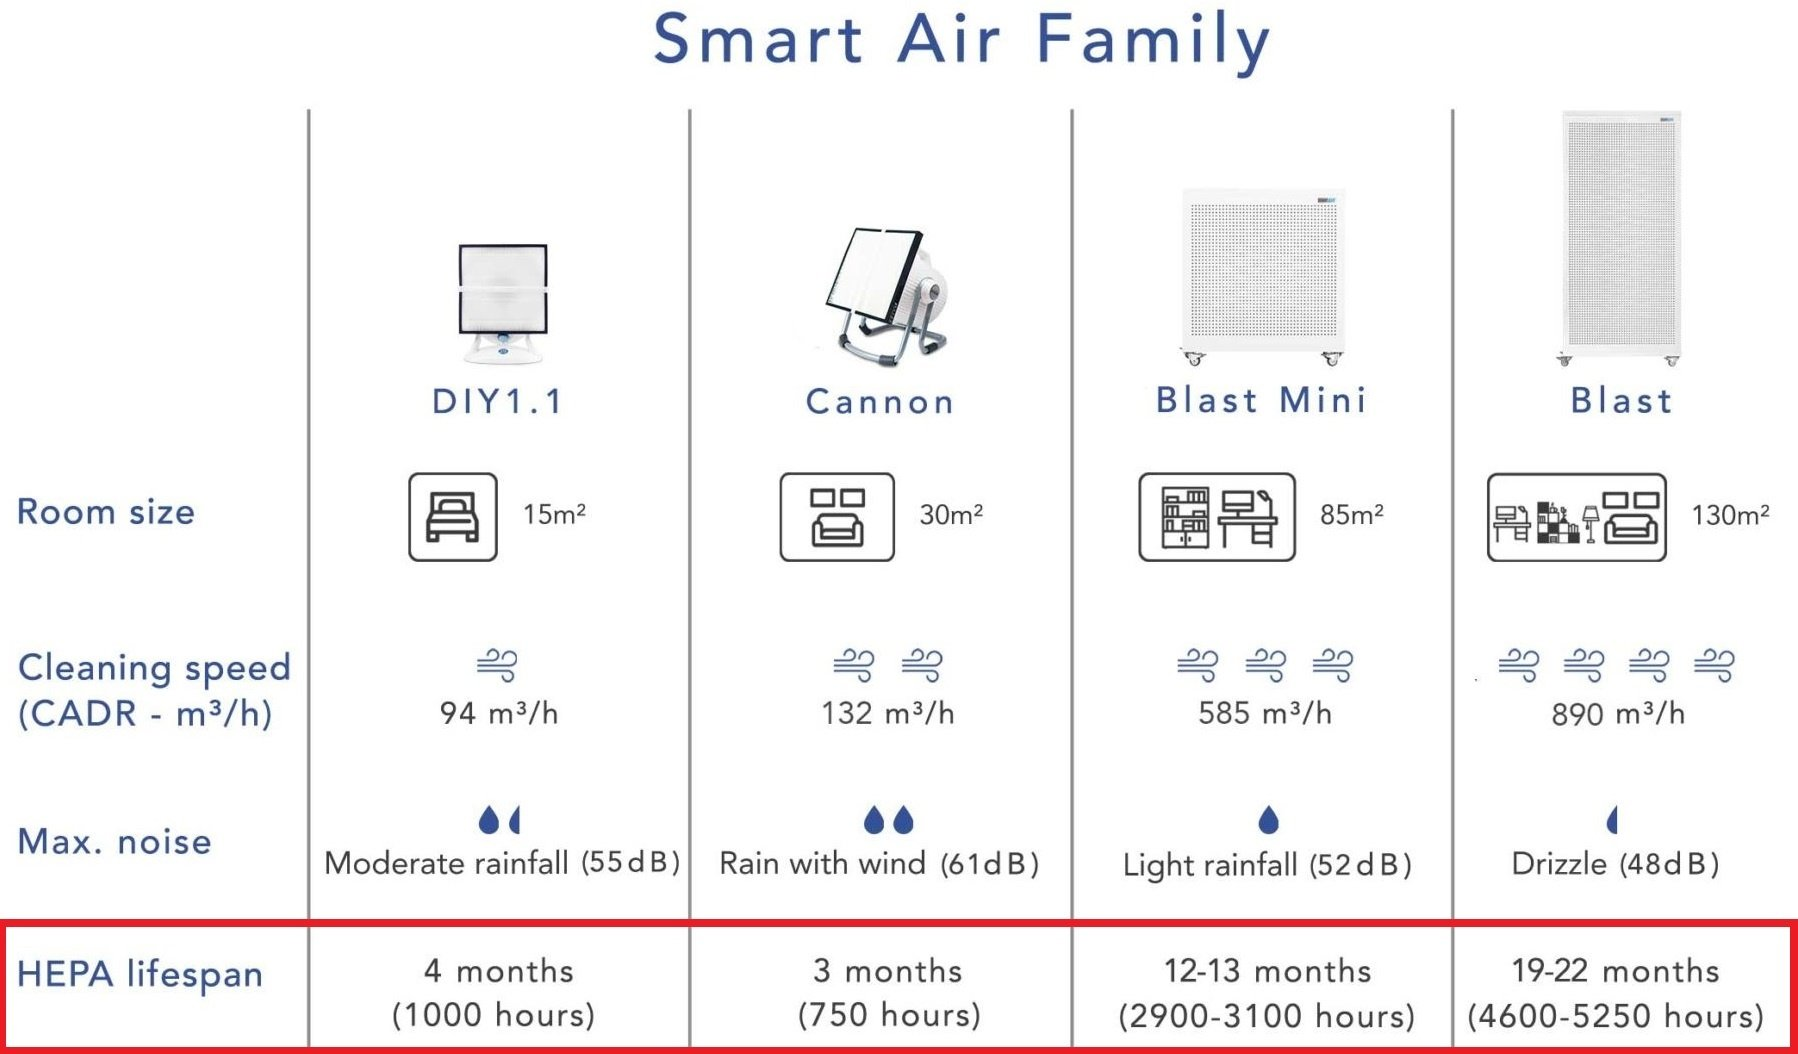 check the hepa lifespan in order to get the most out of purifier